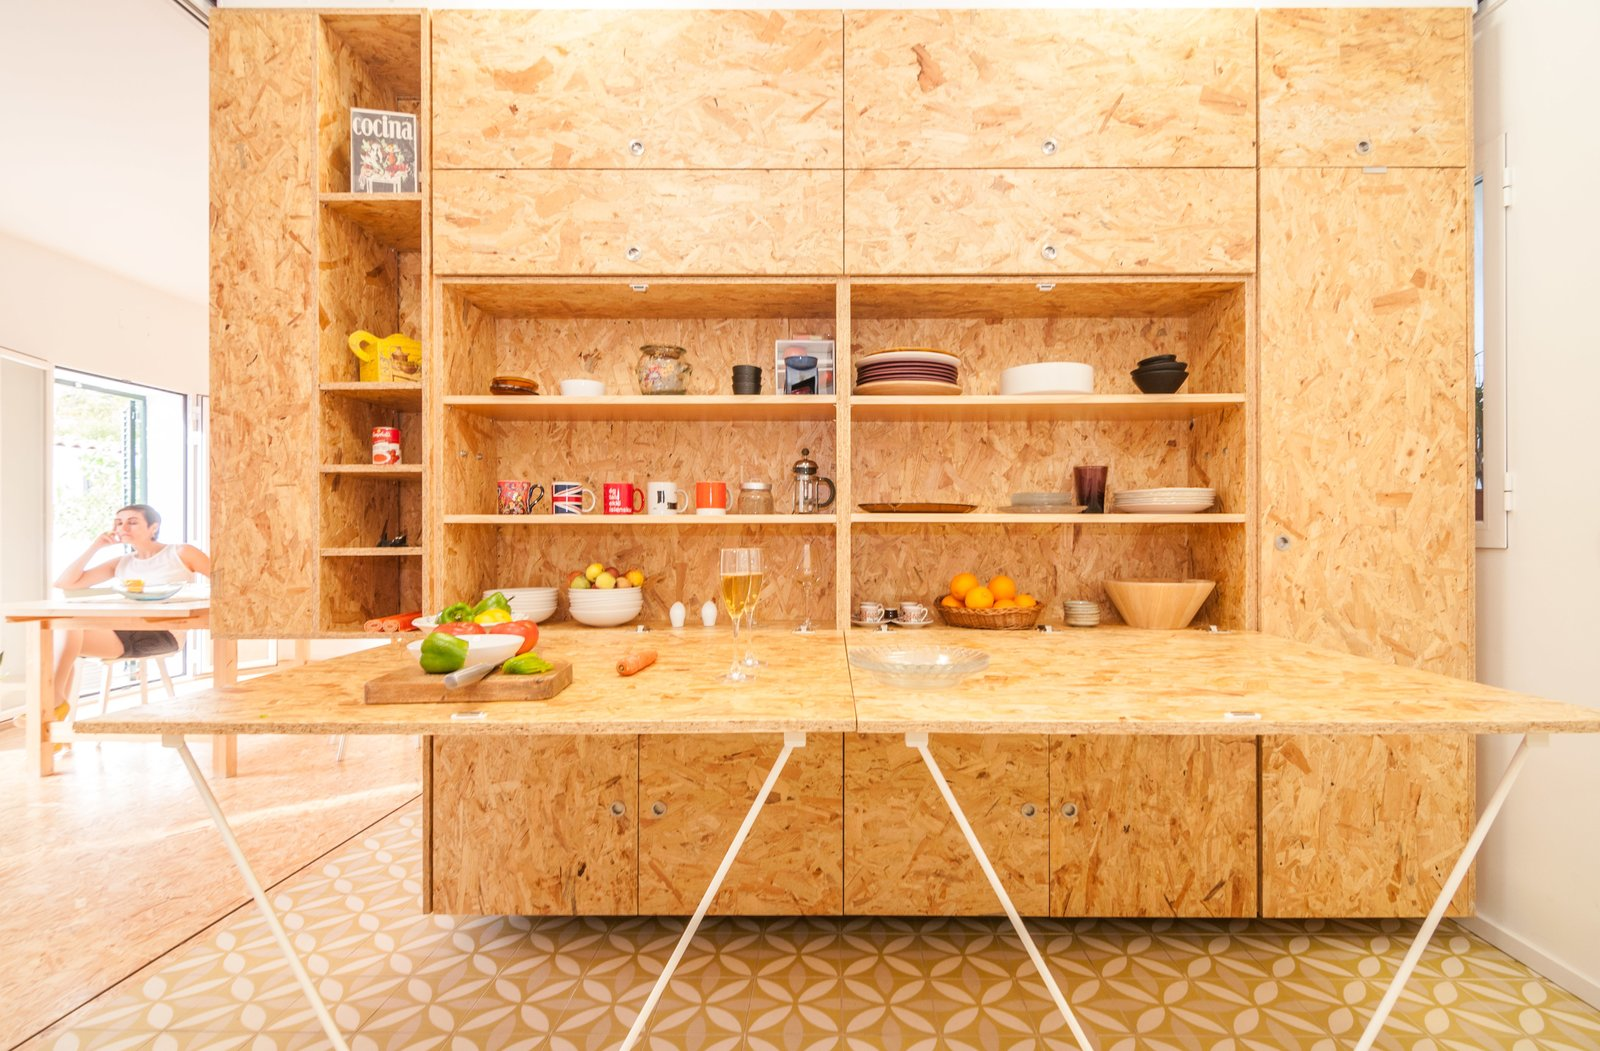 Storage Room, Shelves Storage Type, and Cabinet Storage Type A drop-down countertop conceals dishware and other kitchen belongings.  Photo 3 of 7 in Sliding Shelves Transform This Tiny Home Into Countless Configurations